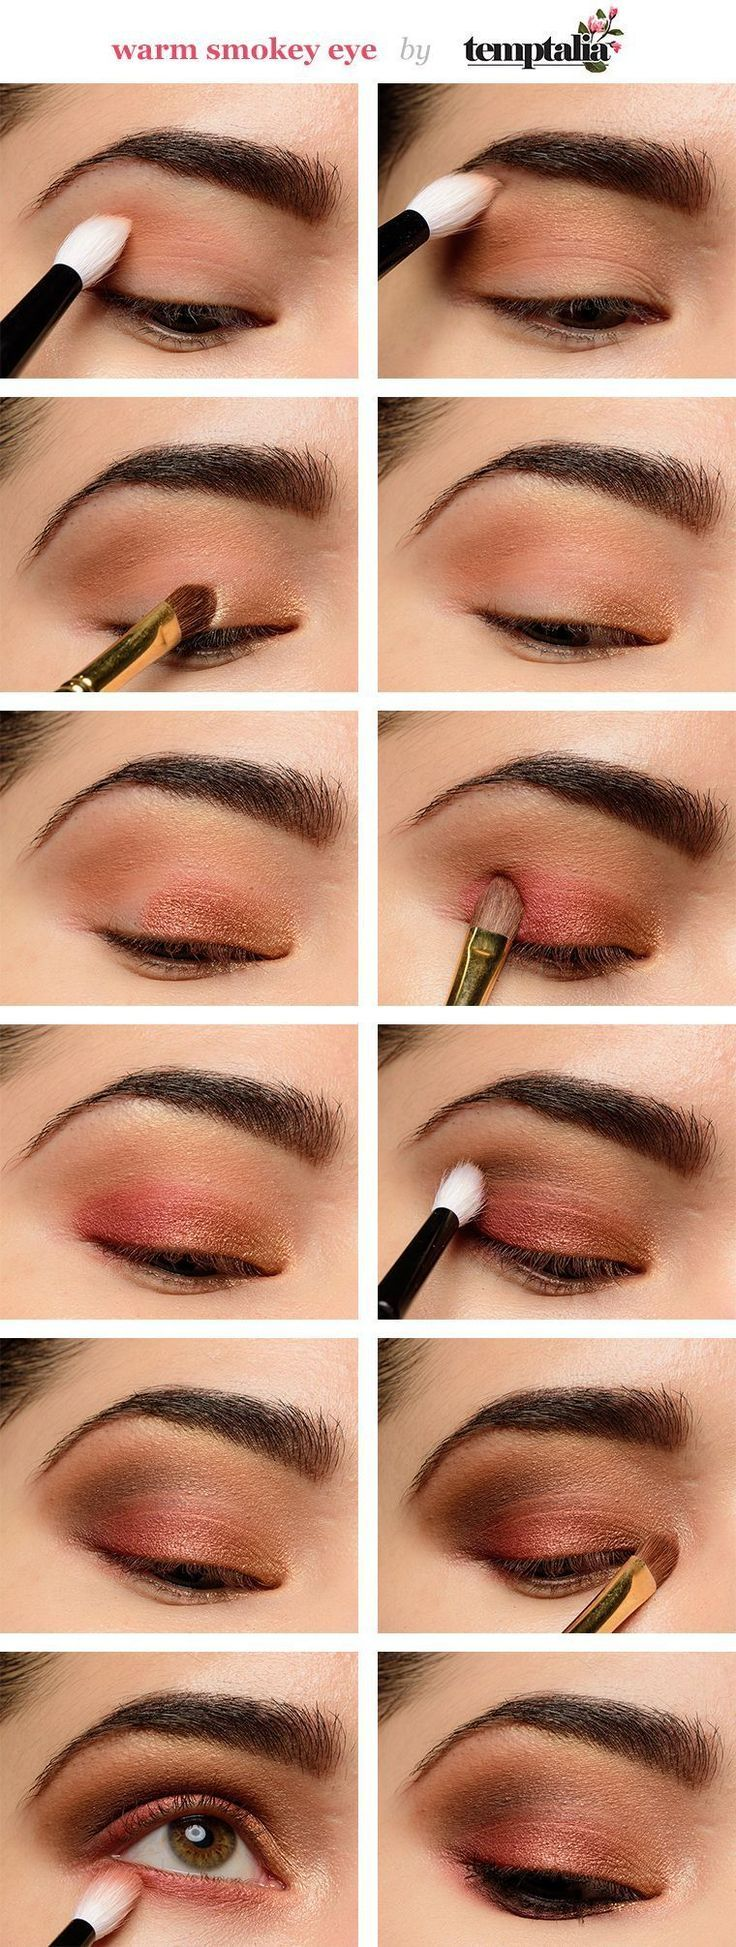 10 makeup Glitter how to apply ideas